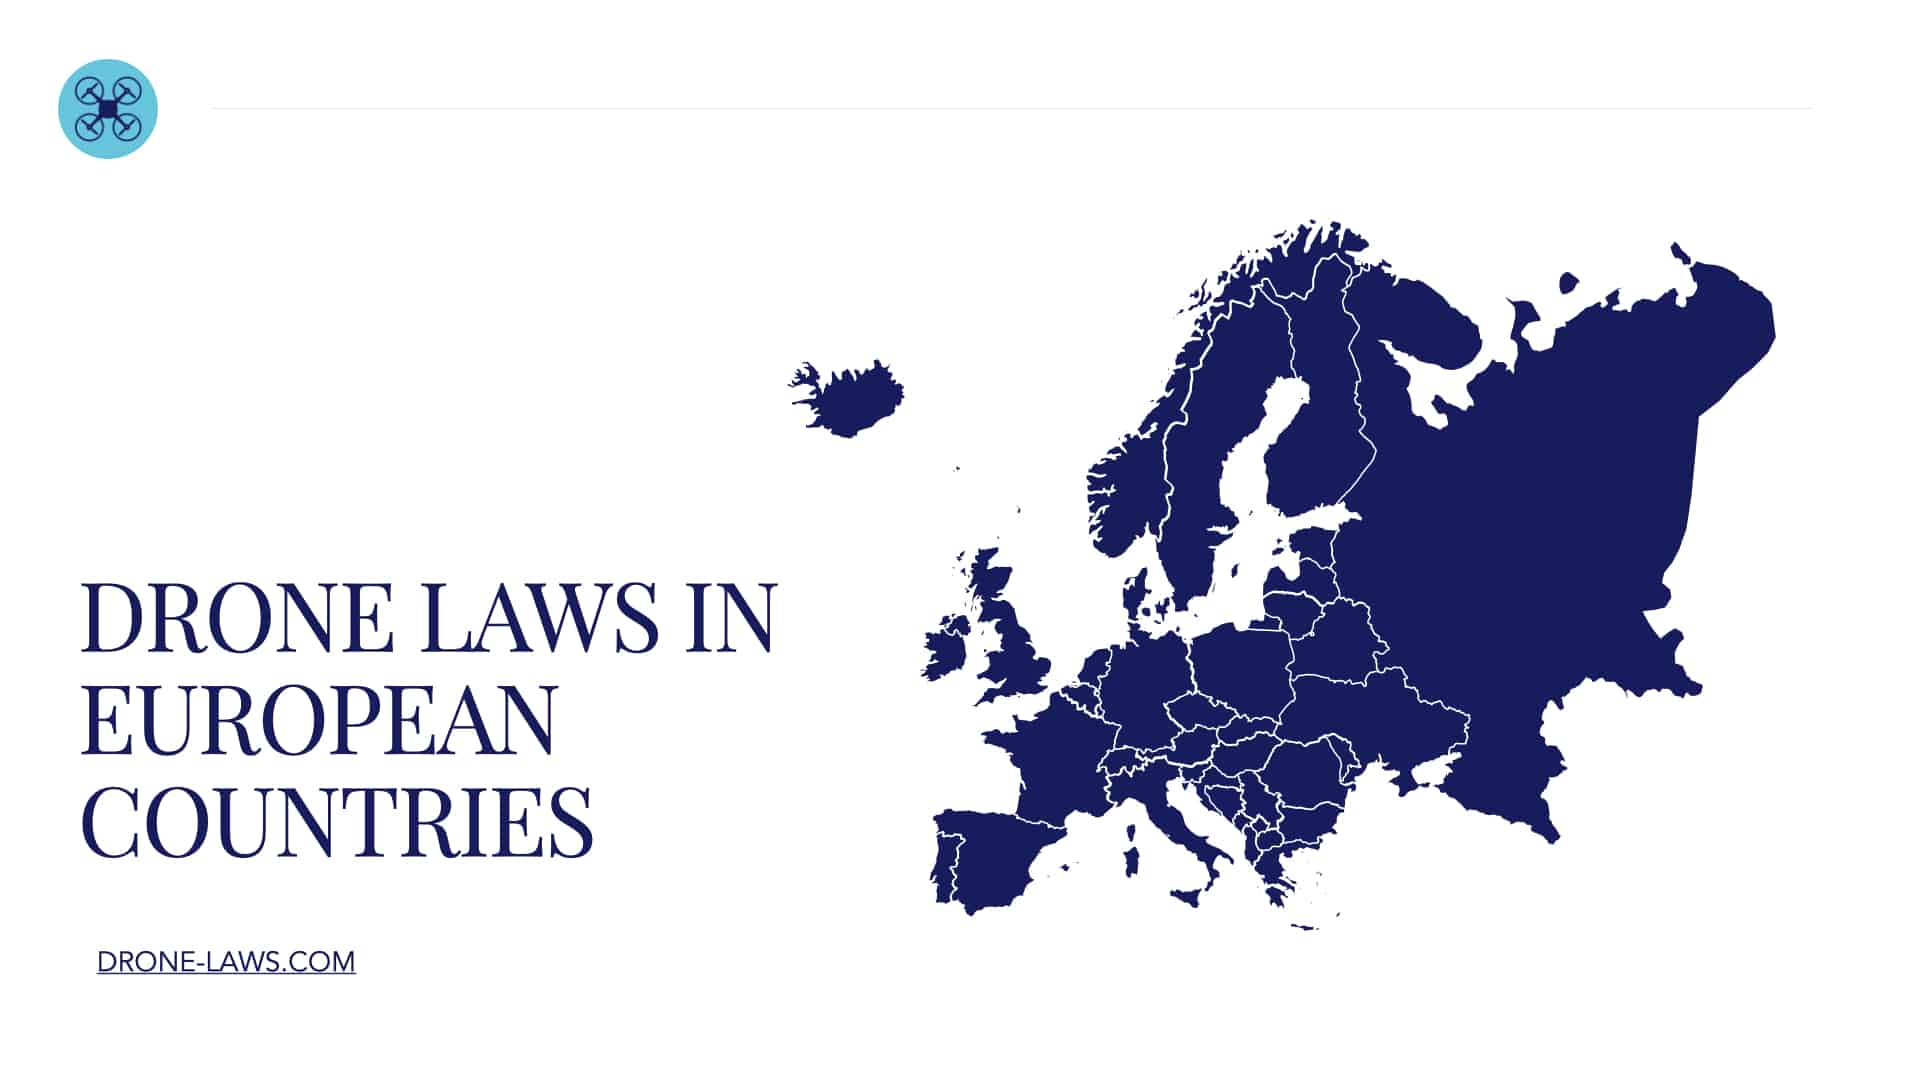 Drone Laws in European Countries